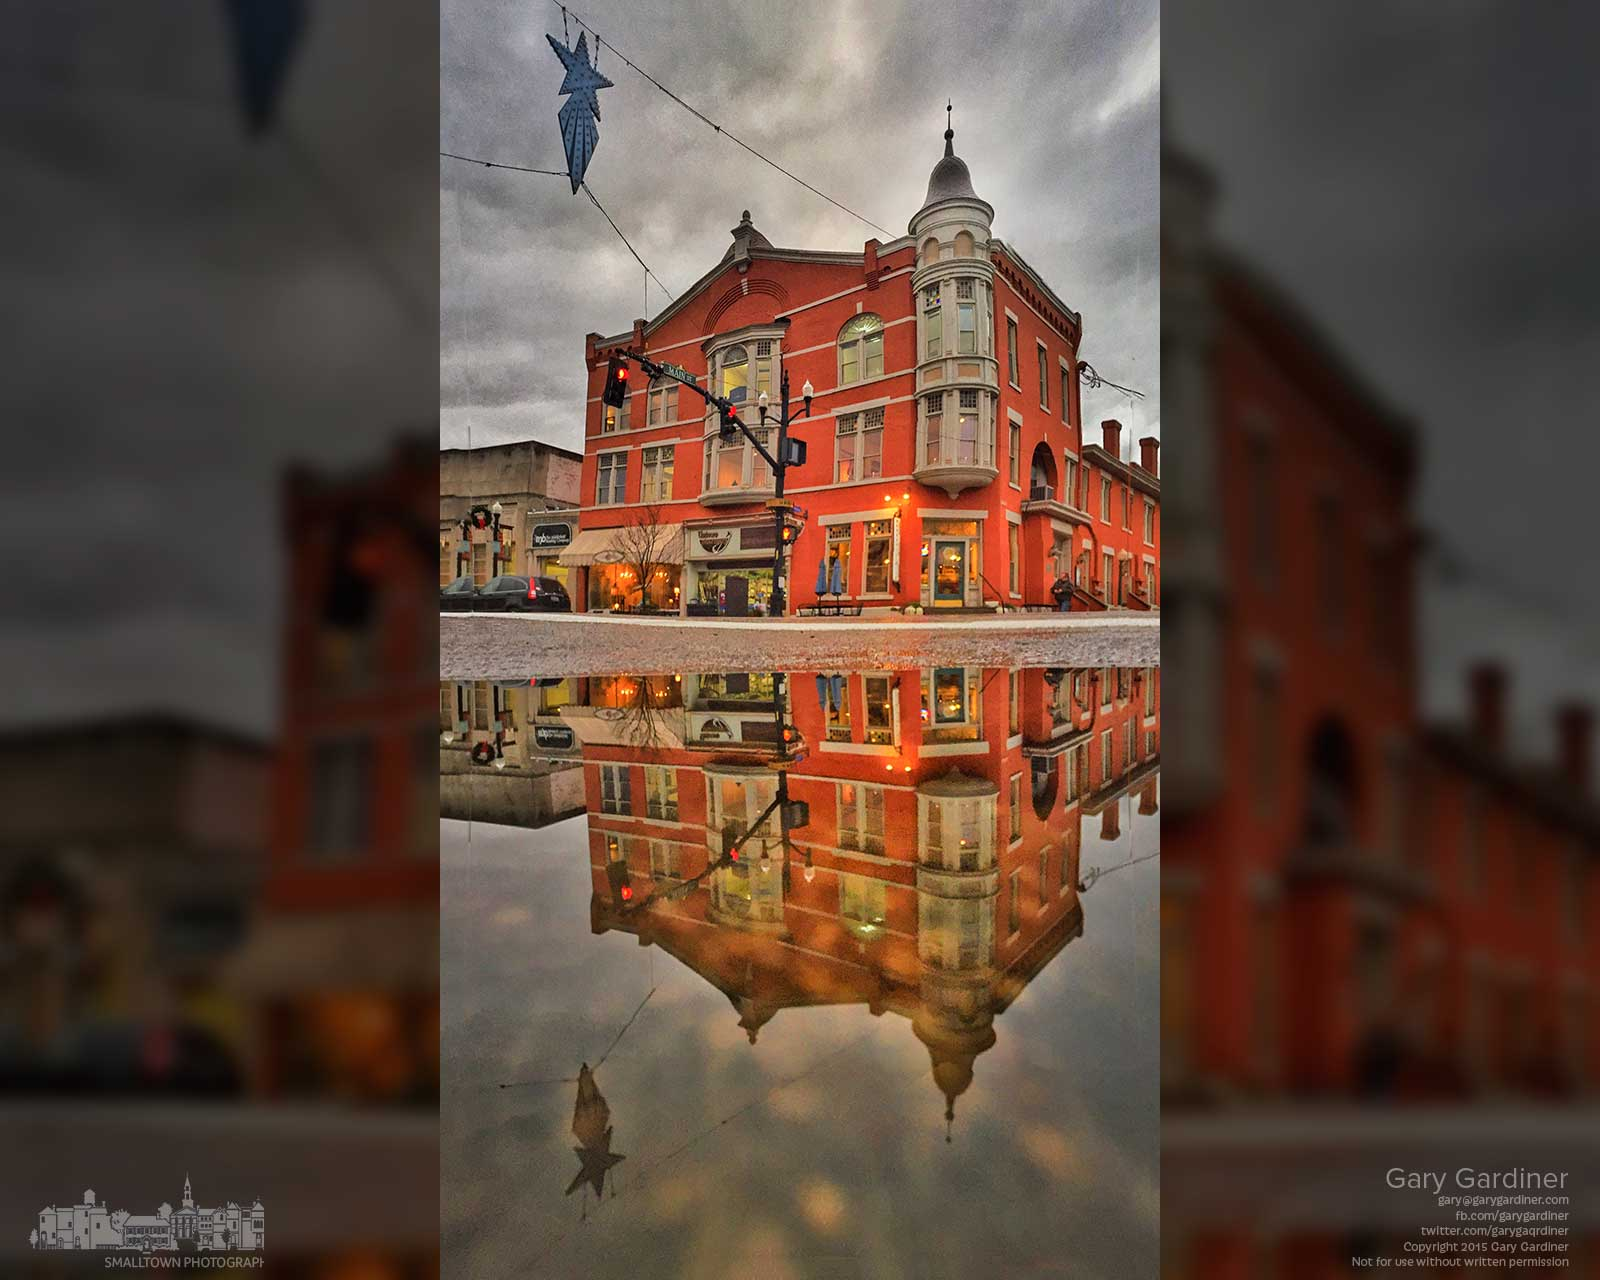 The Holmes Hotel at State and Main is reflected in a small puddle of water after sunset and a day of rain. My Final Photo for Dec. 1, 2015.